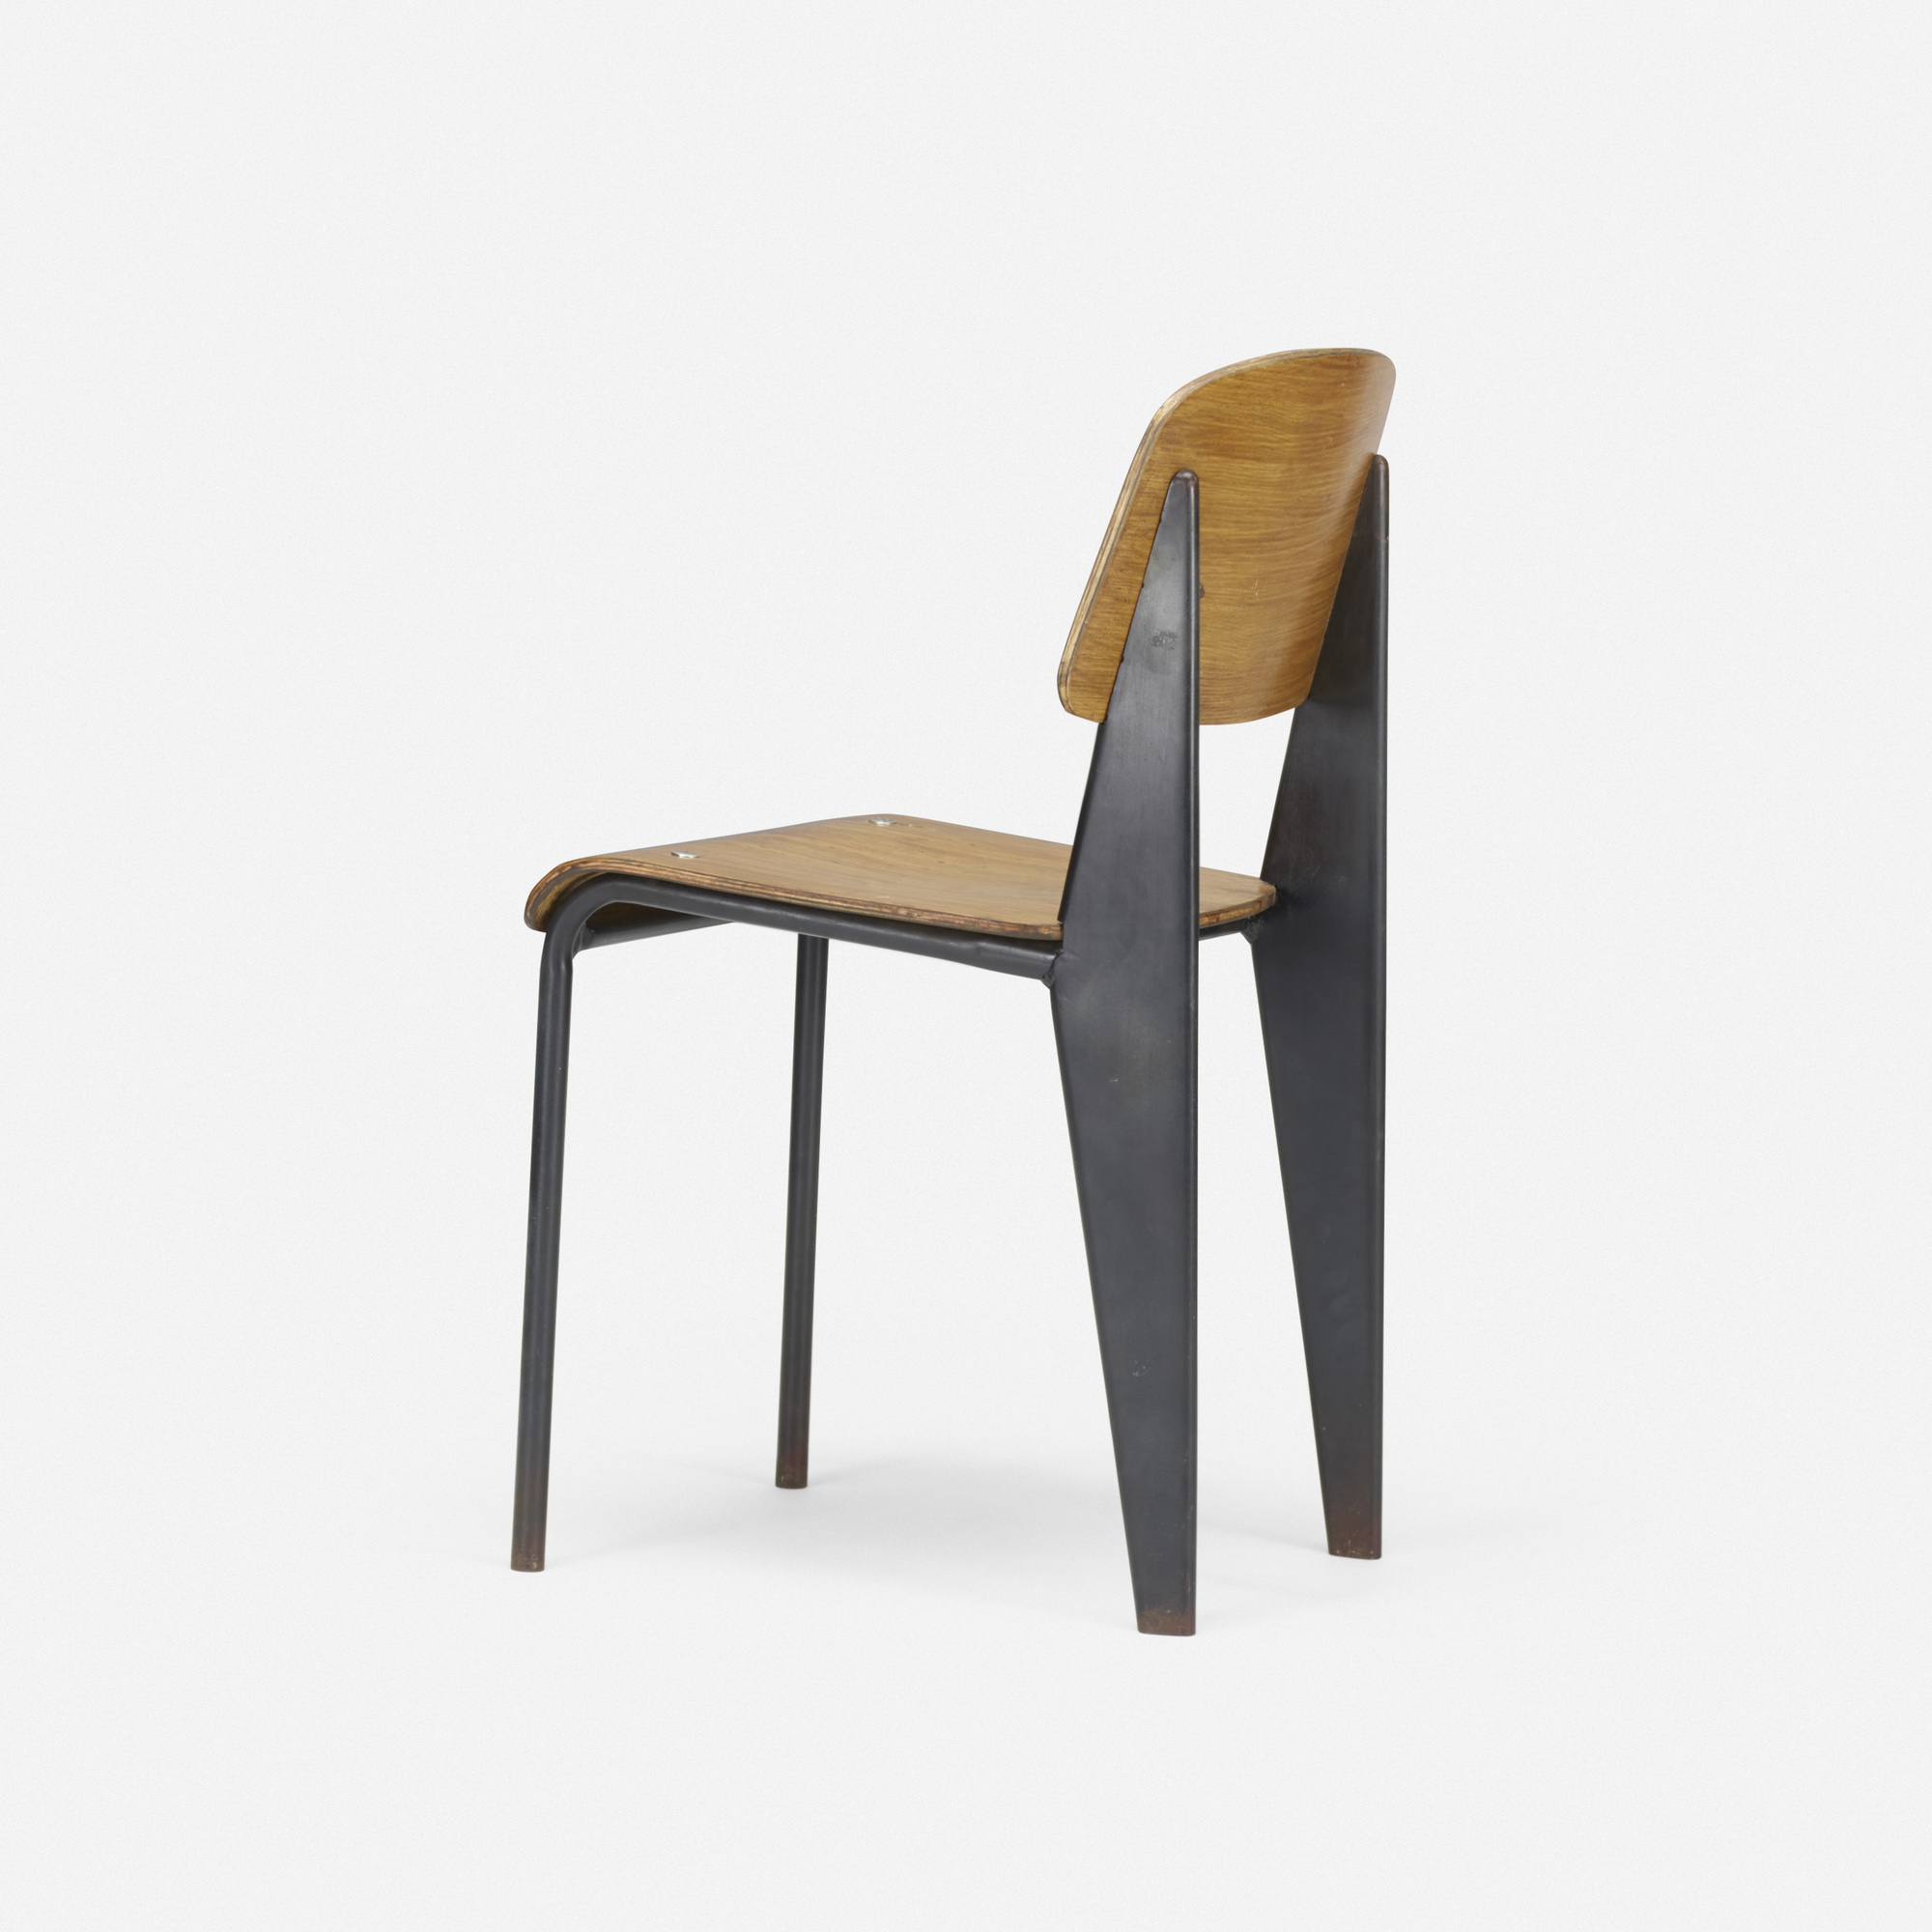 Charmant 100: Jean Prouvé / U0027Semi Metalu0027 Chair, Model No. 305